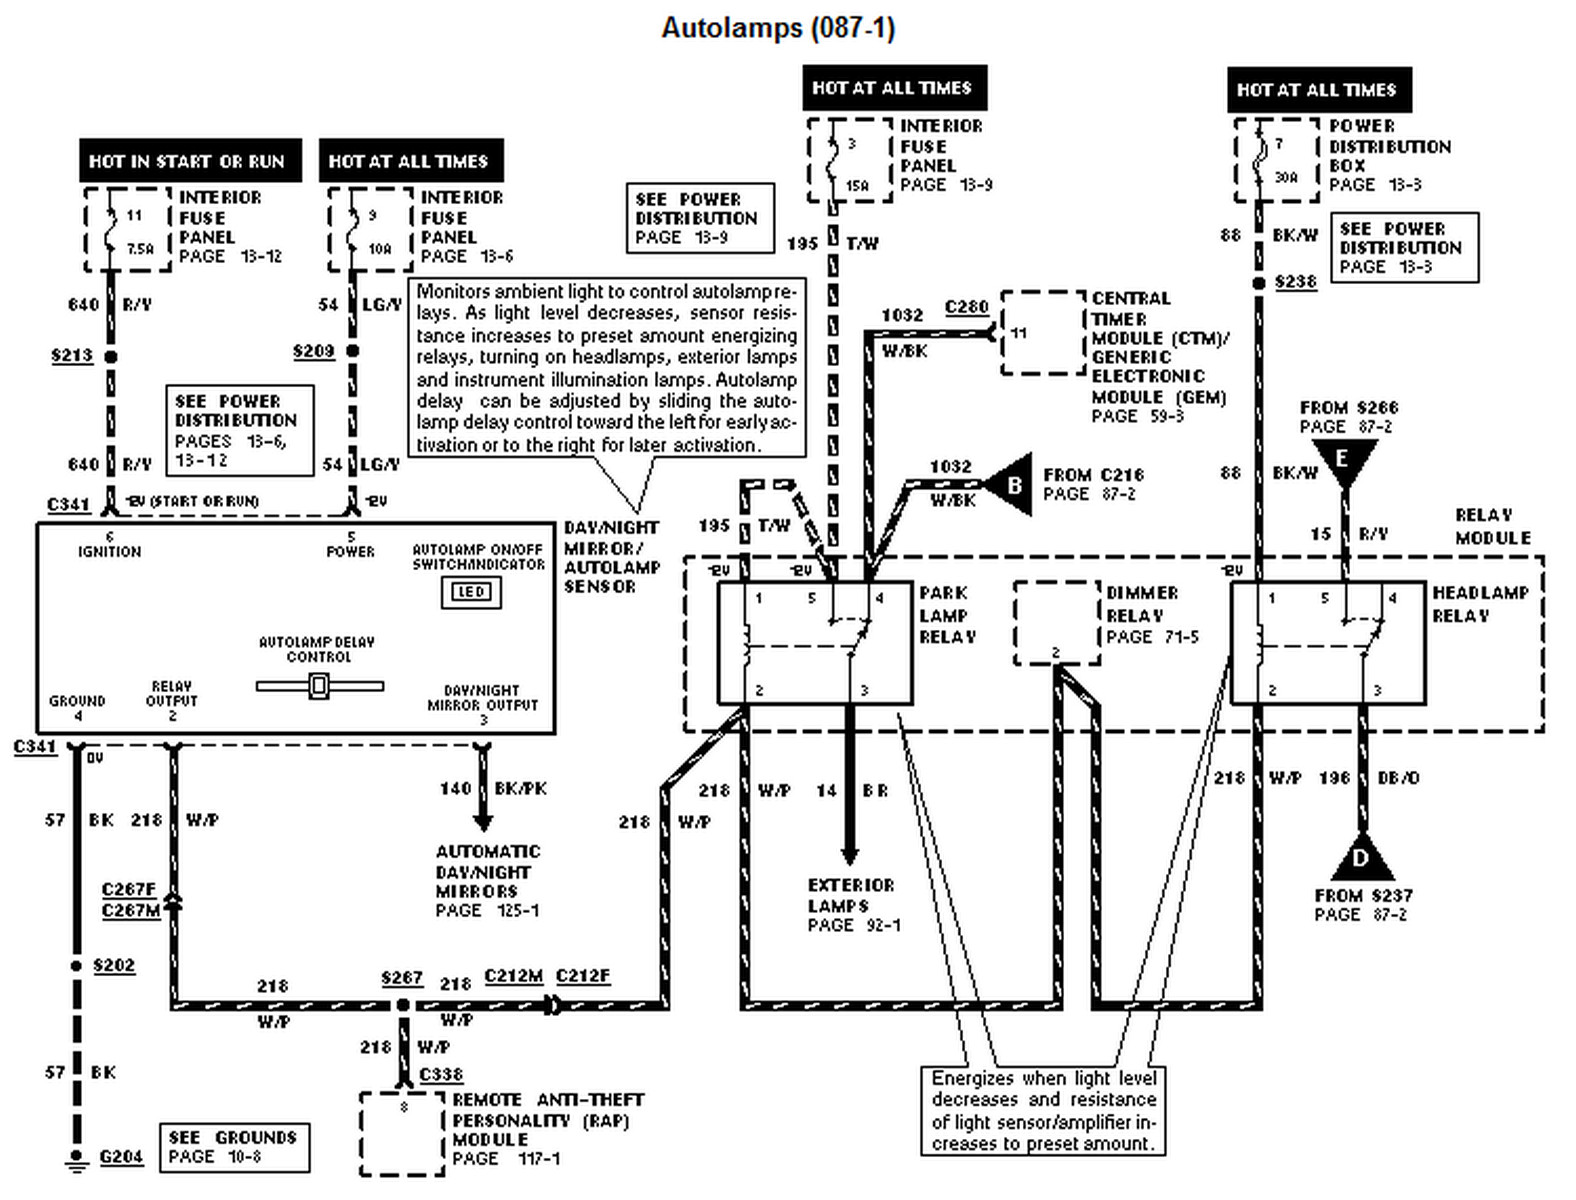 1997 ford explorer stereo wiring diagram with 96 F150 Wiring Diagram on 6mqm1 Gm Yukon Need  plete Correct Wiring Schematic together with Coolant Temp Sensor Location 213371 besides Chevrolet Venture Van Starting System Wiring Diagram together with 1983 Ford Ranger Alternator Wiring as well Radio Wiring Diagram 2001 Nissan Altima.